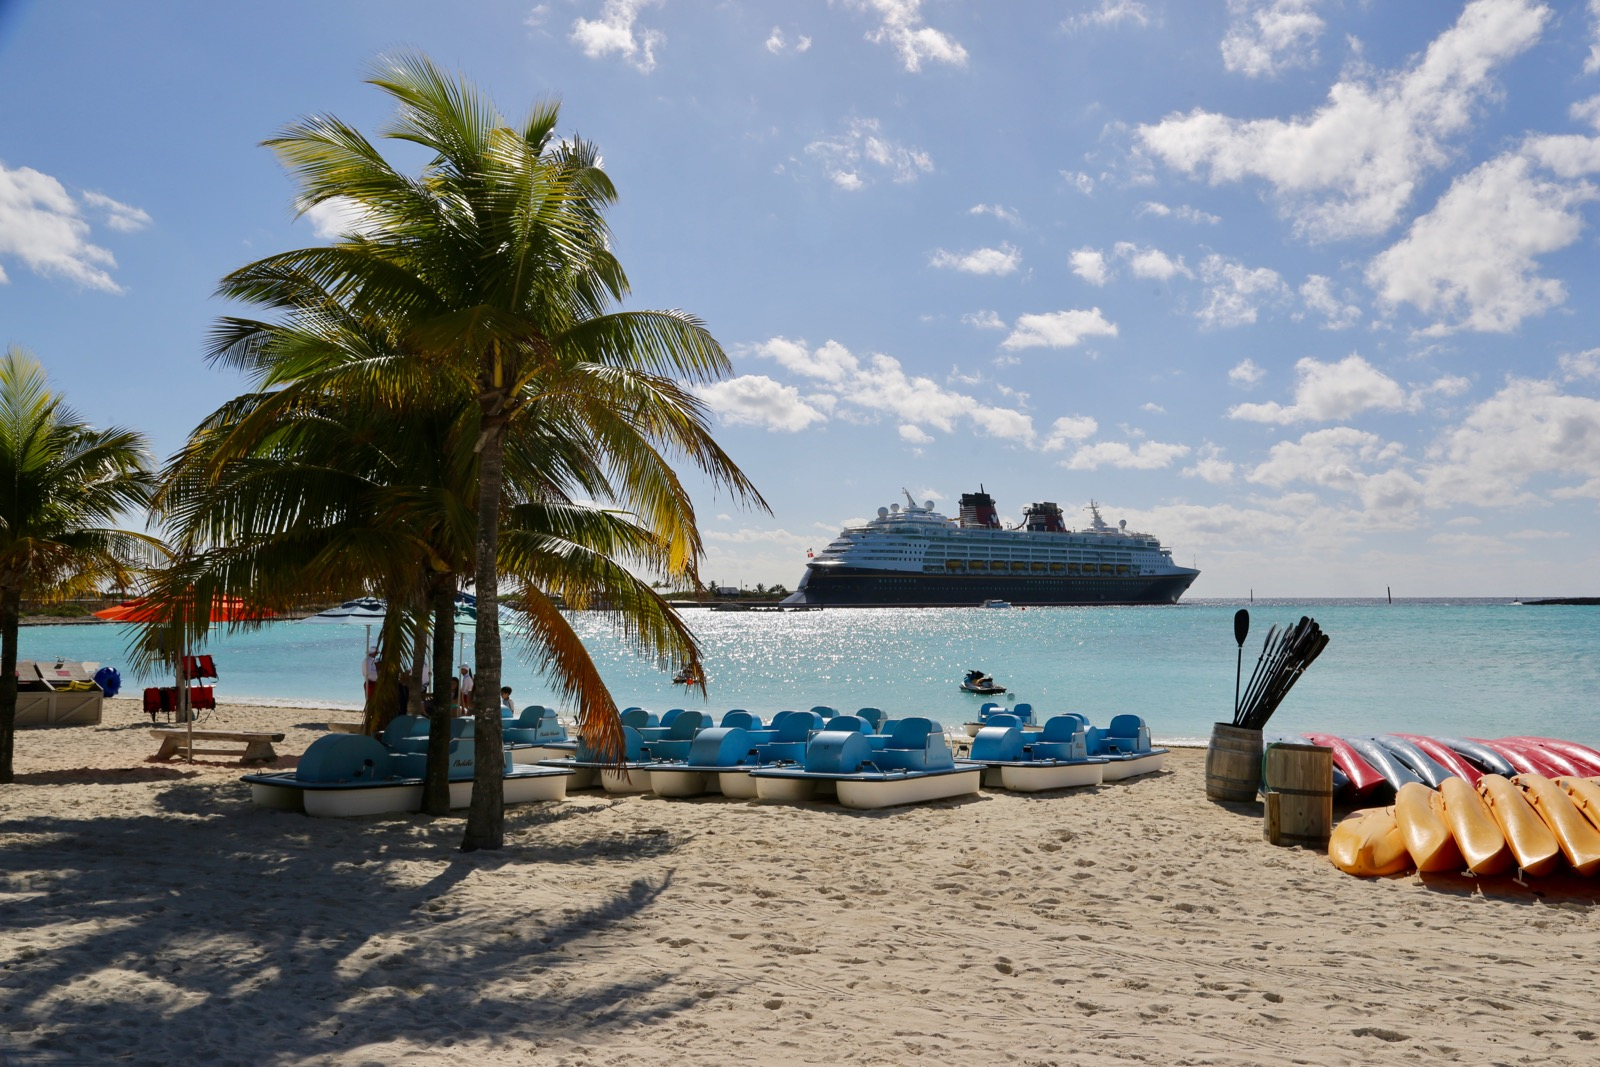 Disney Cruise Prices 2020.Bahamas Disney Cruises 3 4 And 5 Day Cruises To The Bahamas